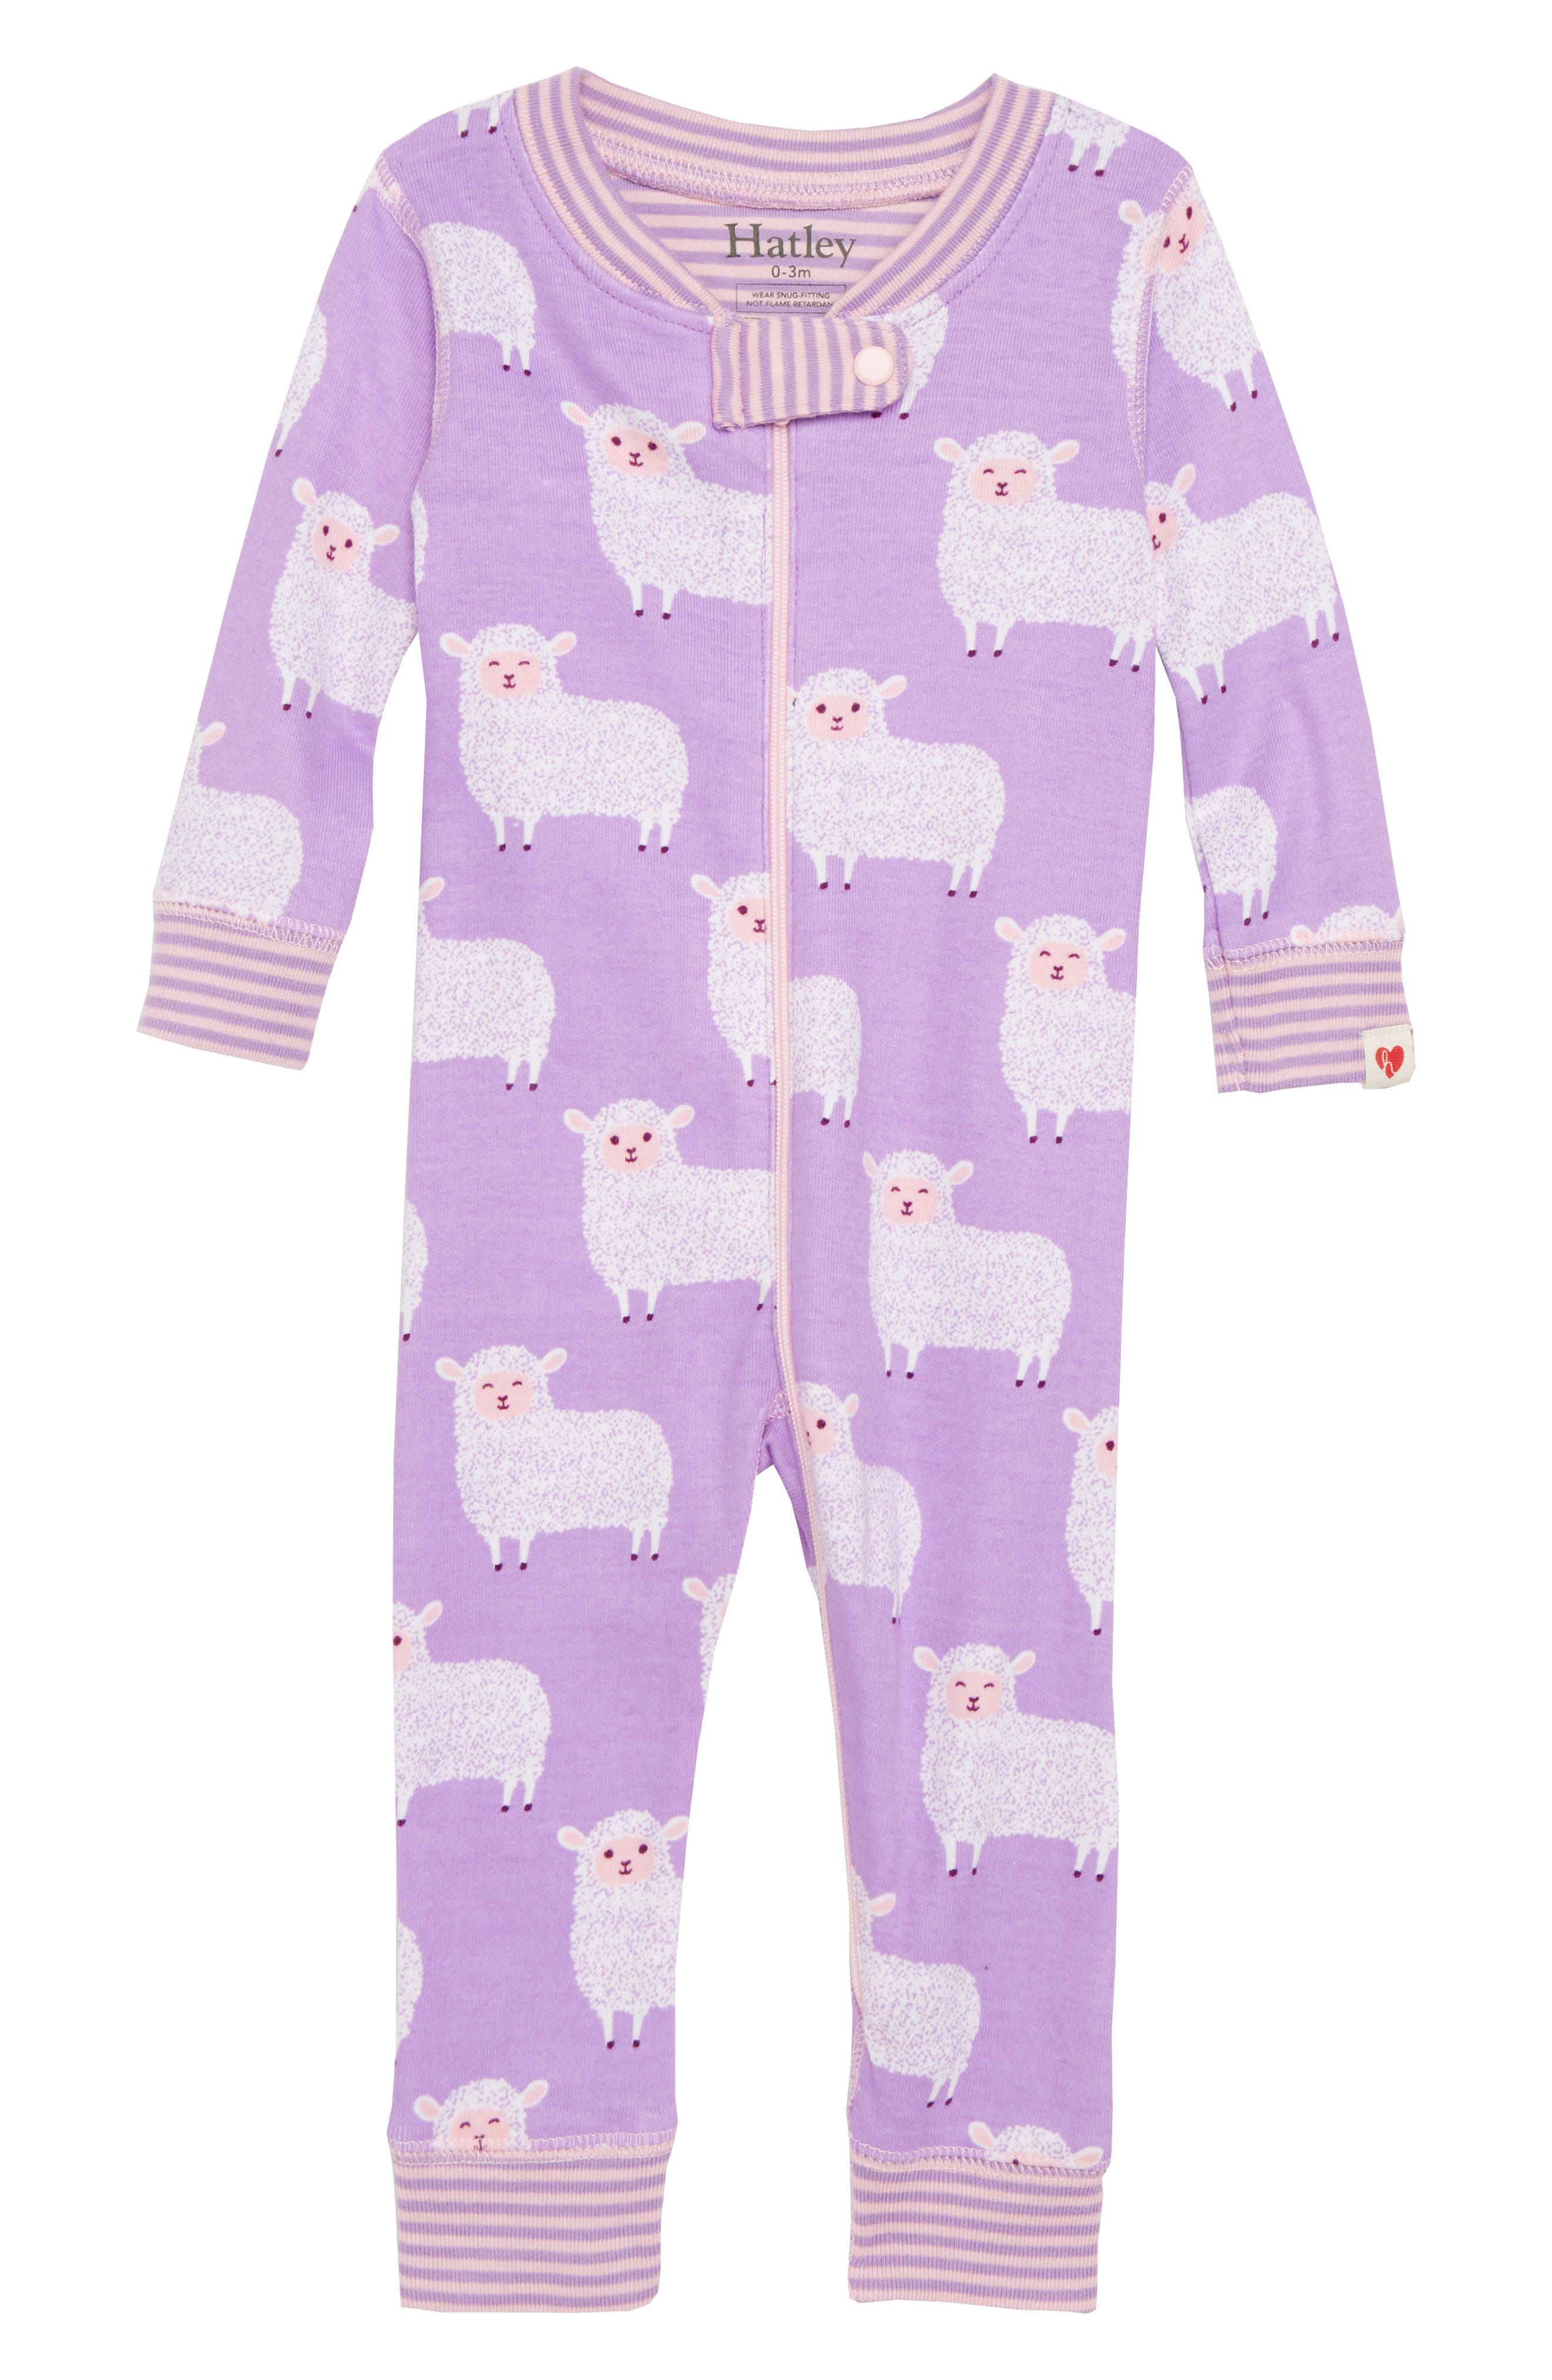 Counting Sheep Fitted One-Piece Pajamas,                             Main thumbnail 1, color,                             500